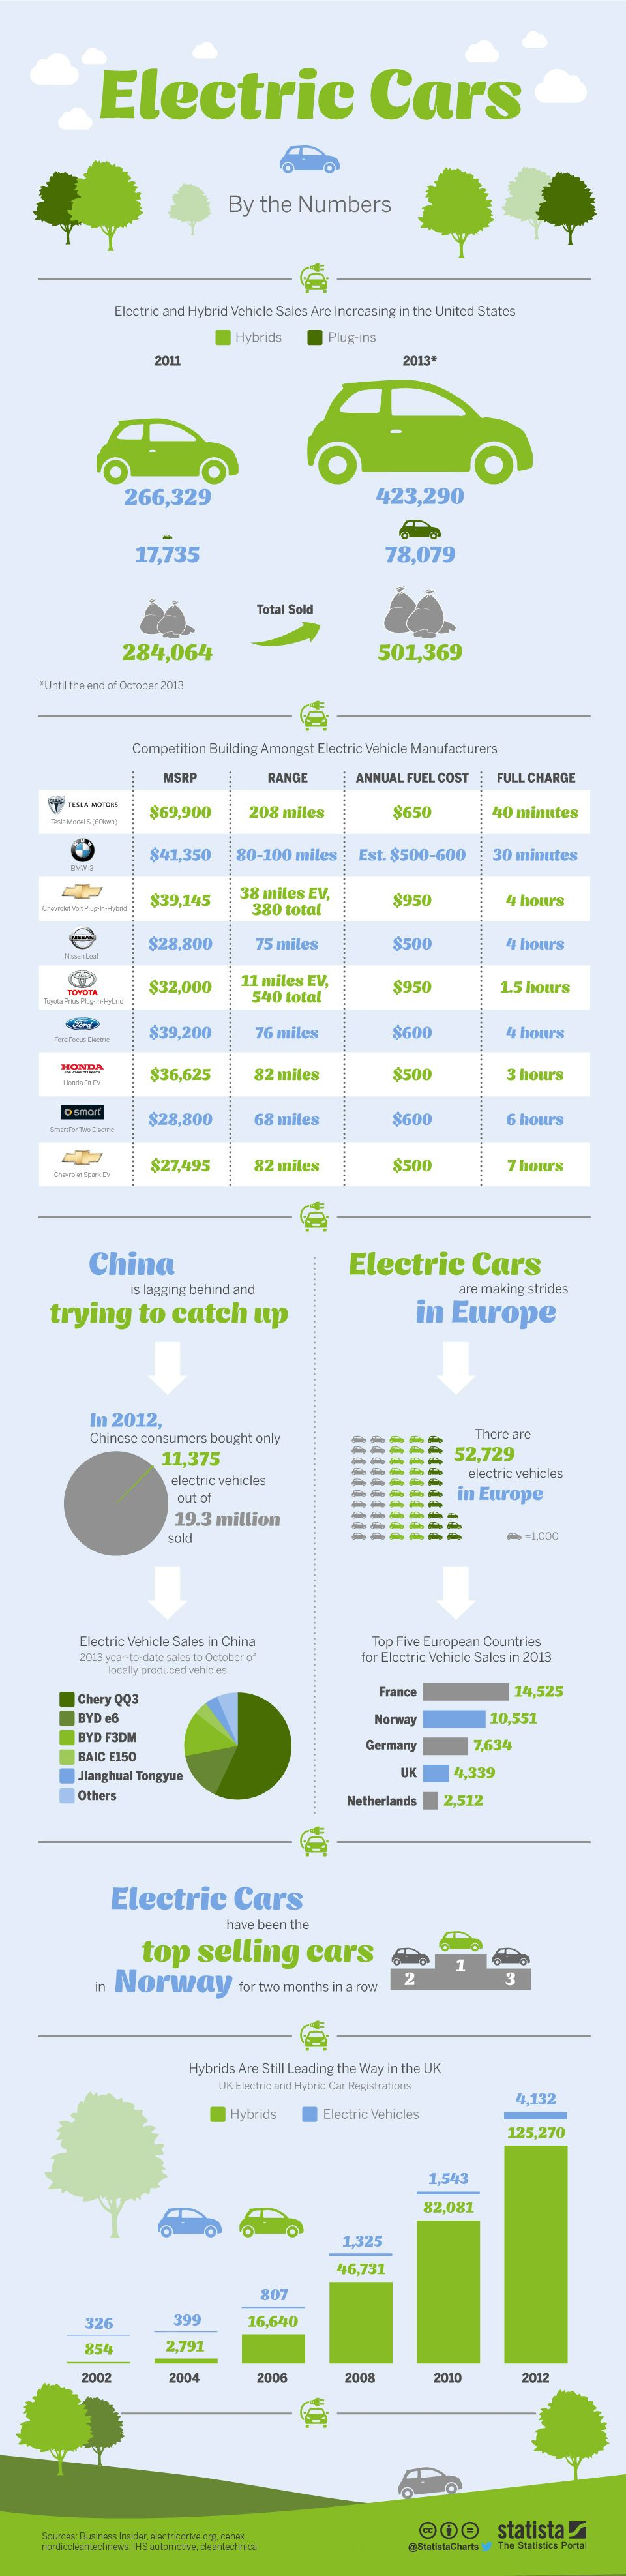 Best 25 hybrid vehicle ideas on pinterest hydrogen car eco friendly cars and electric vehicle